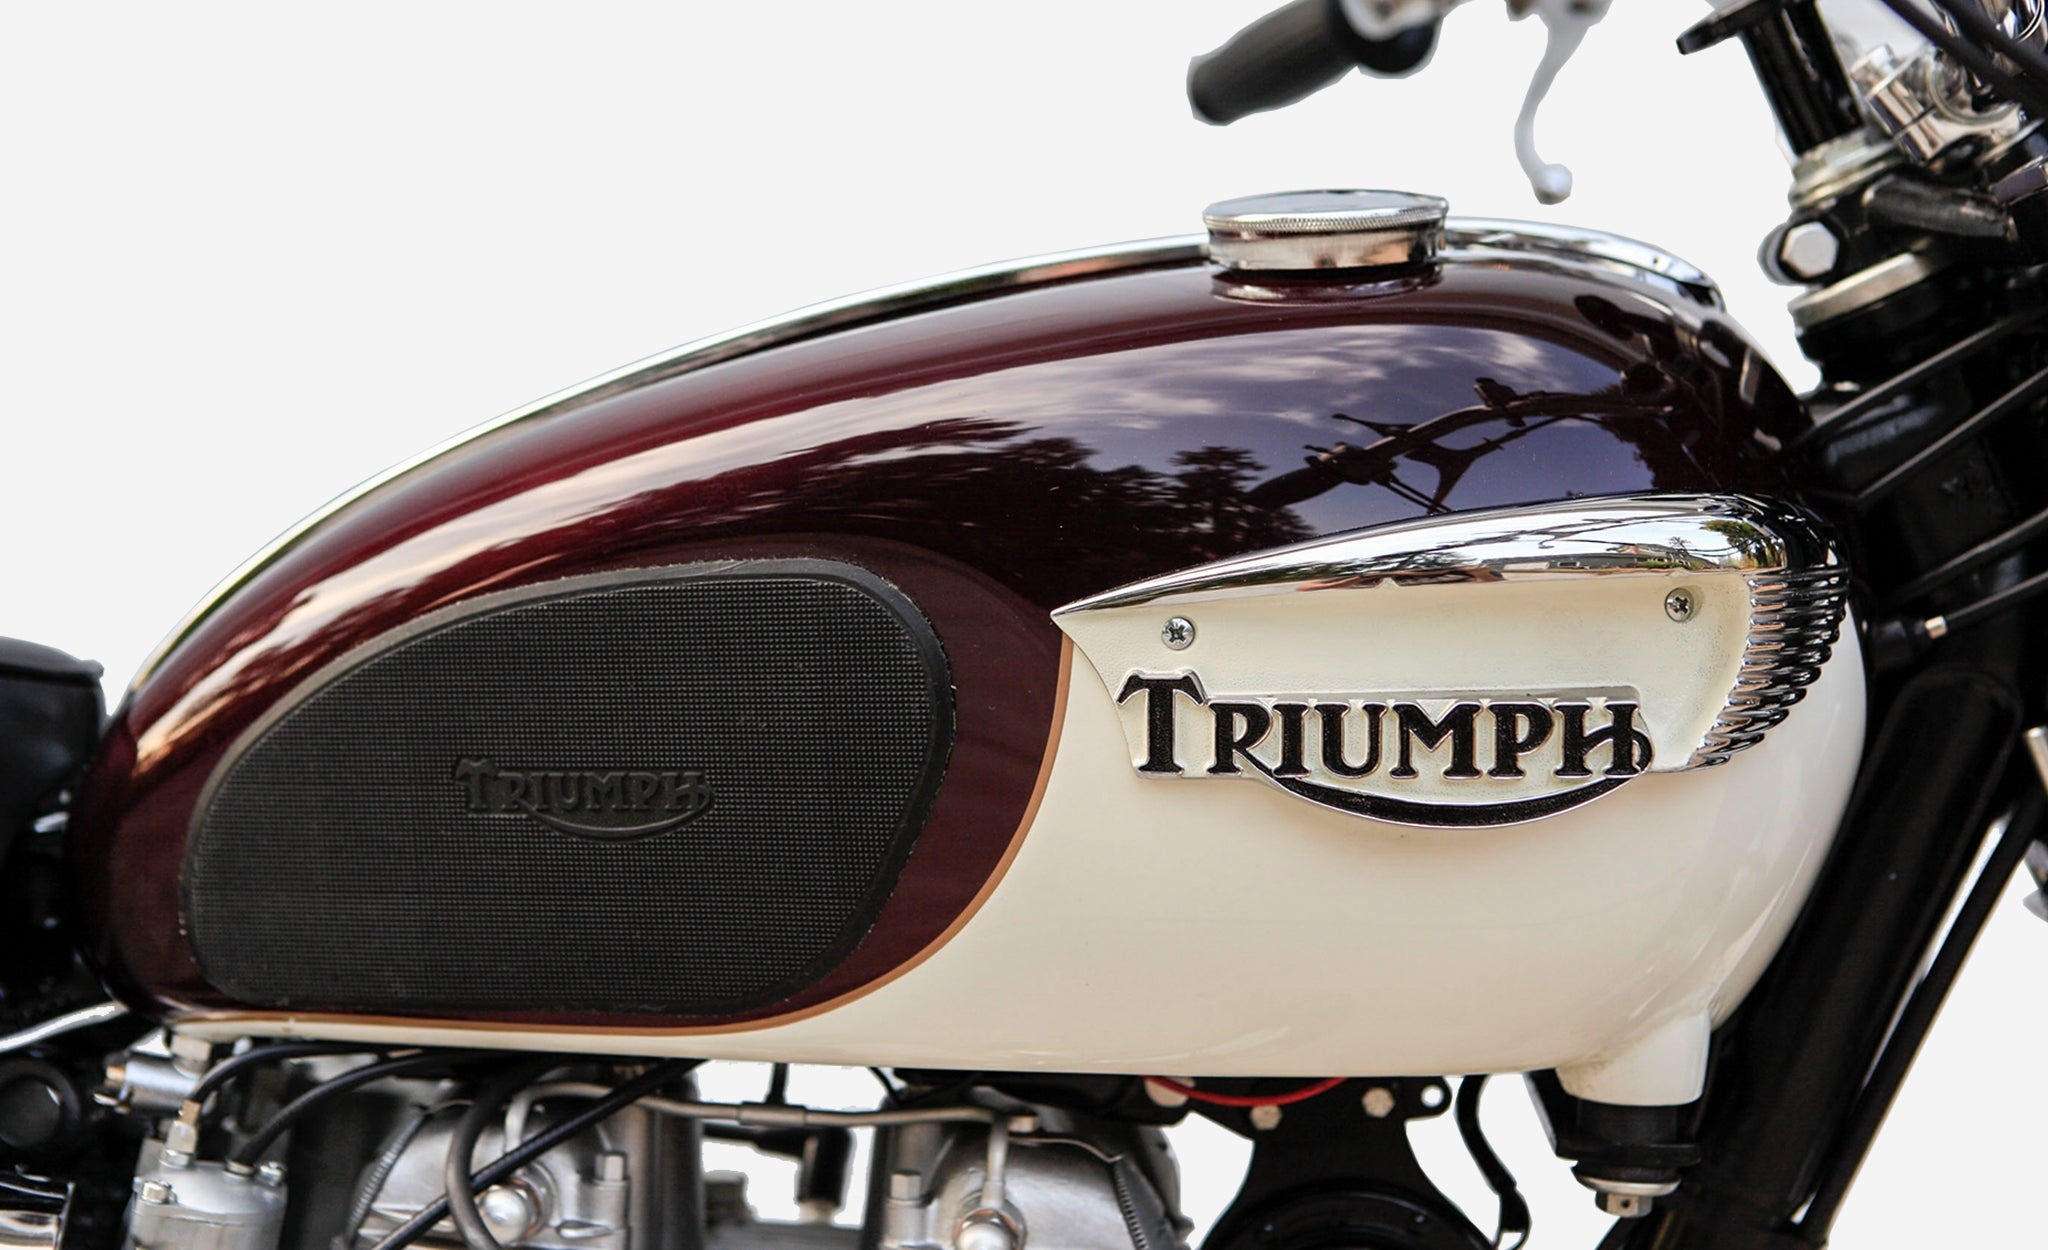 Triumph Boneville motorcycle fuel tank and logo